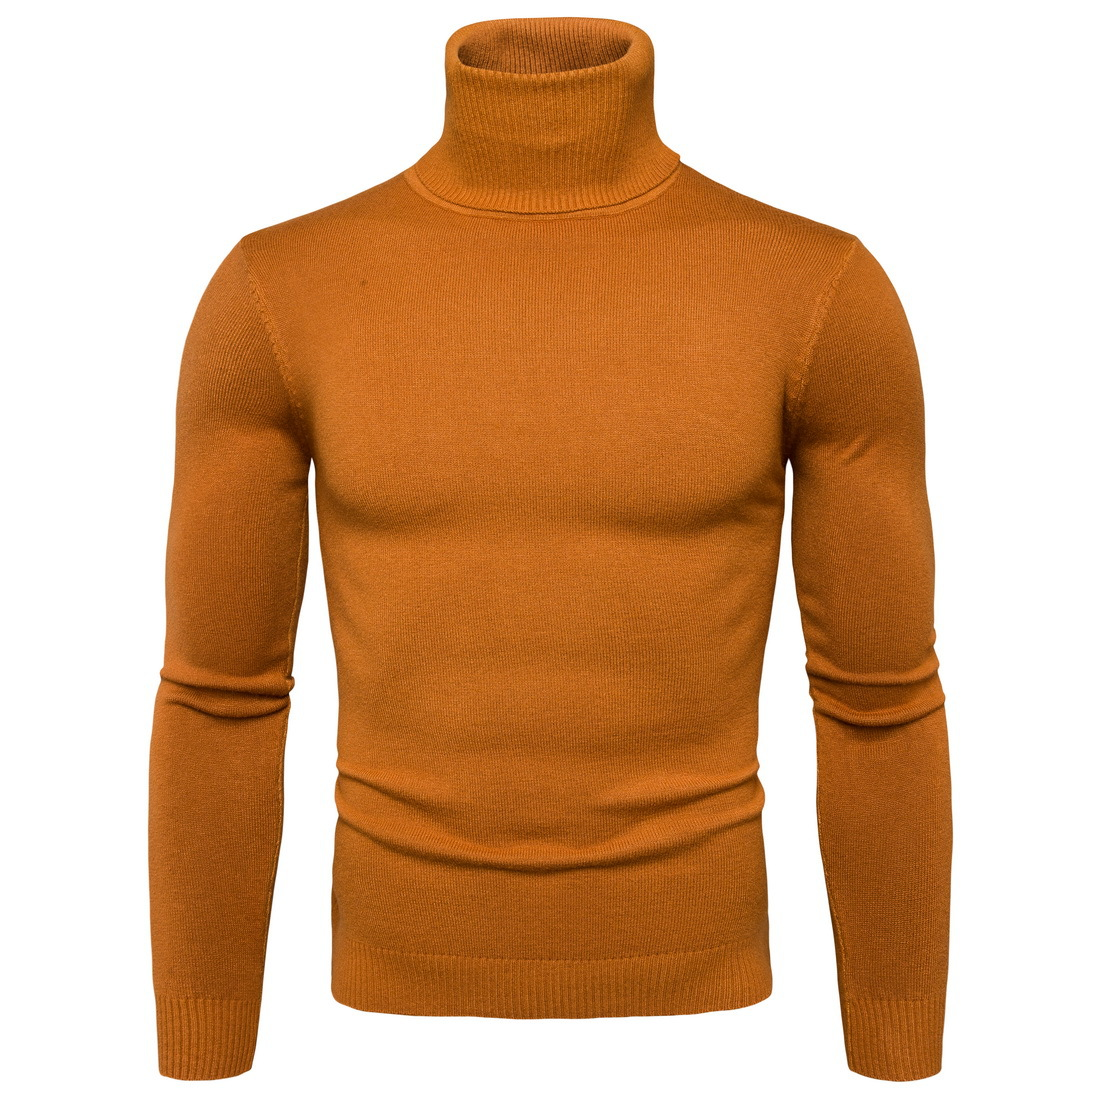 Men Knitted Sweater Autumn Winter Turtleneck Long Sleeve Casual Slim Pullover Tops yellow